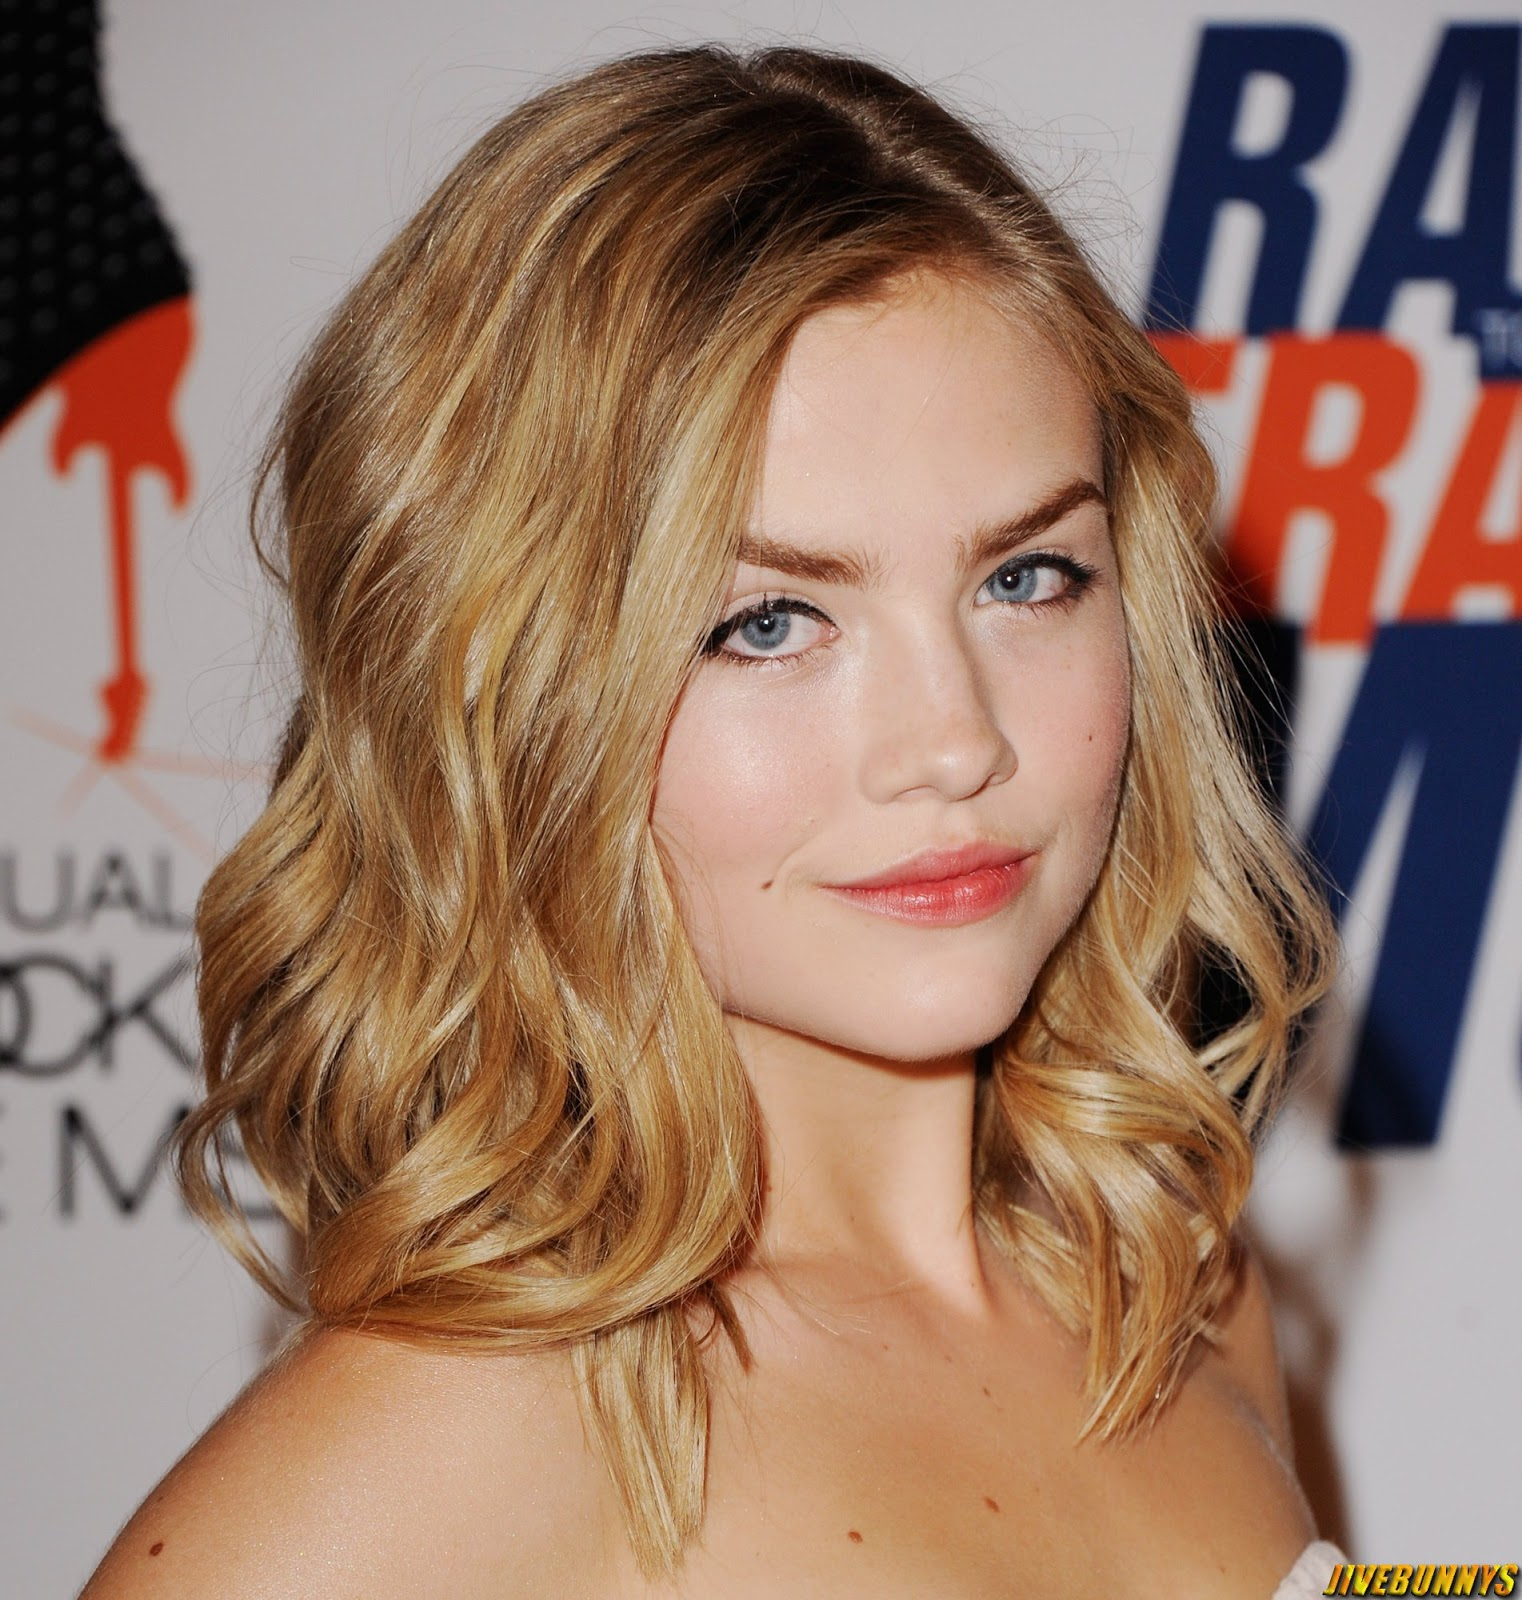 Jivebunnys Female Celebrity Picture Gallery: Maddie Hasson ... Jennifer Aniston News